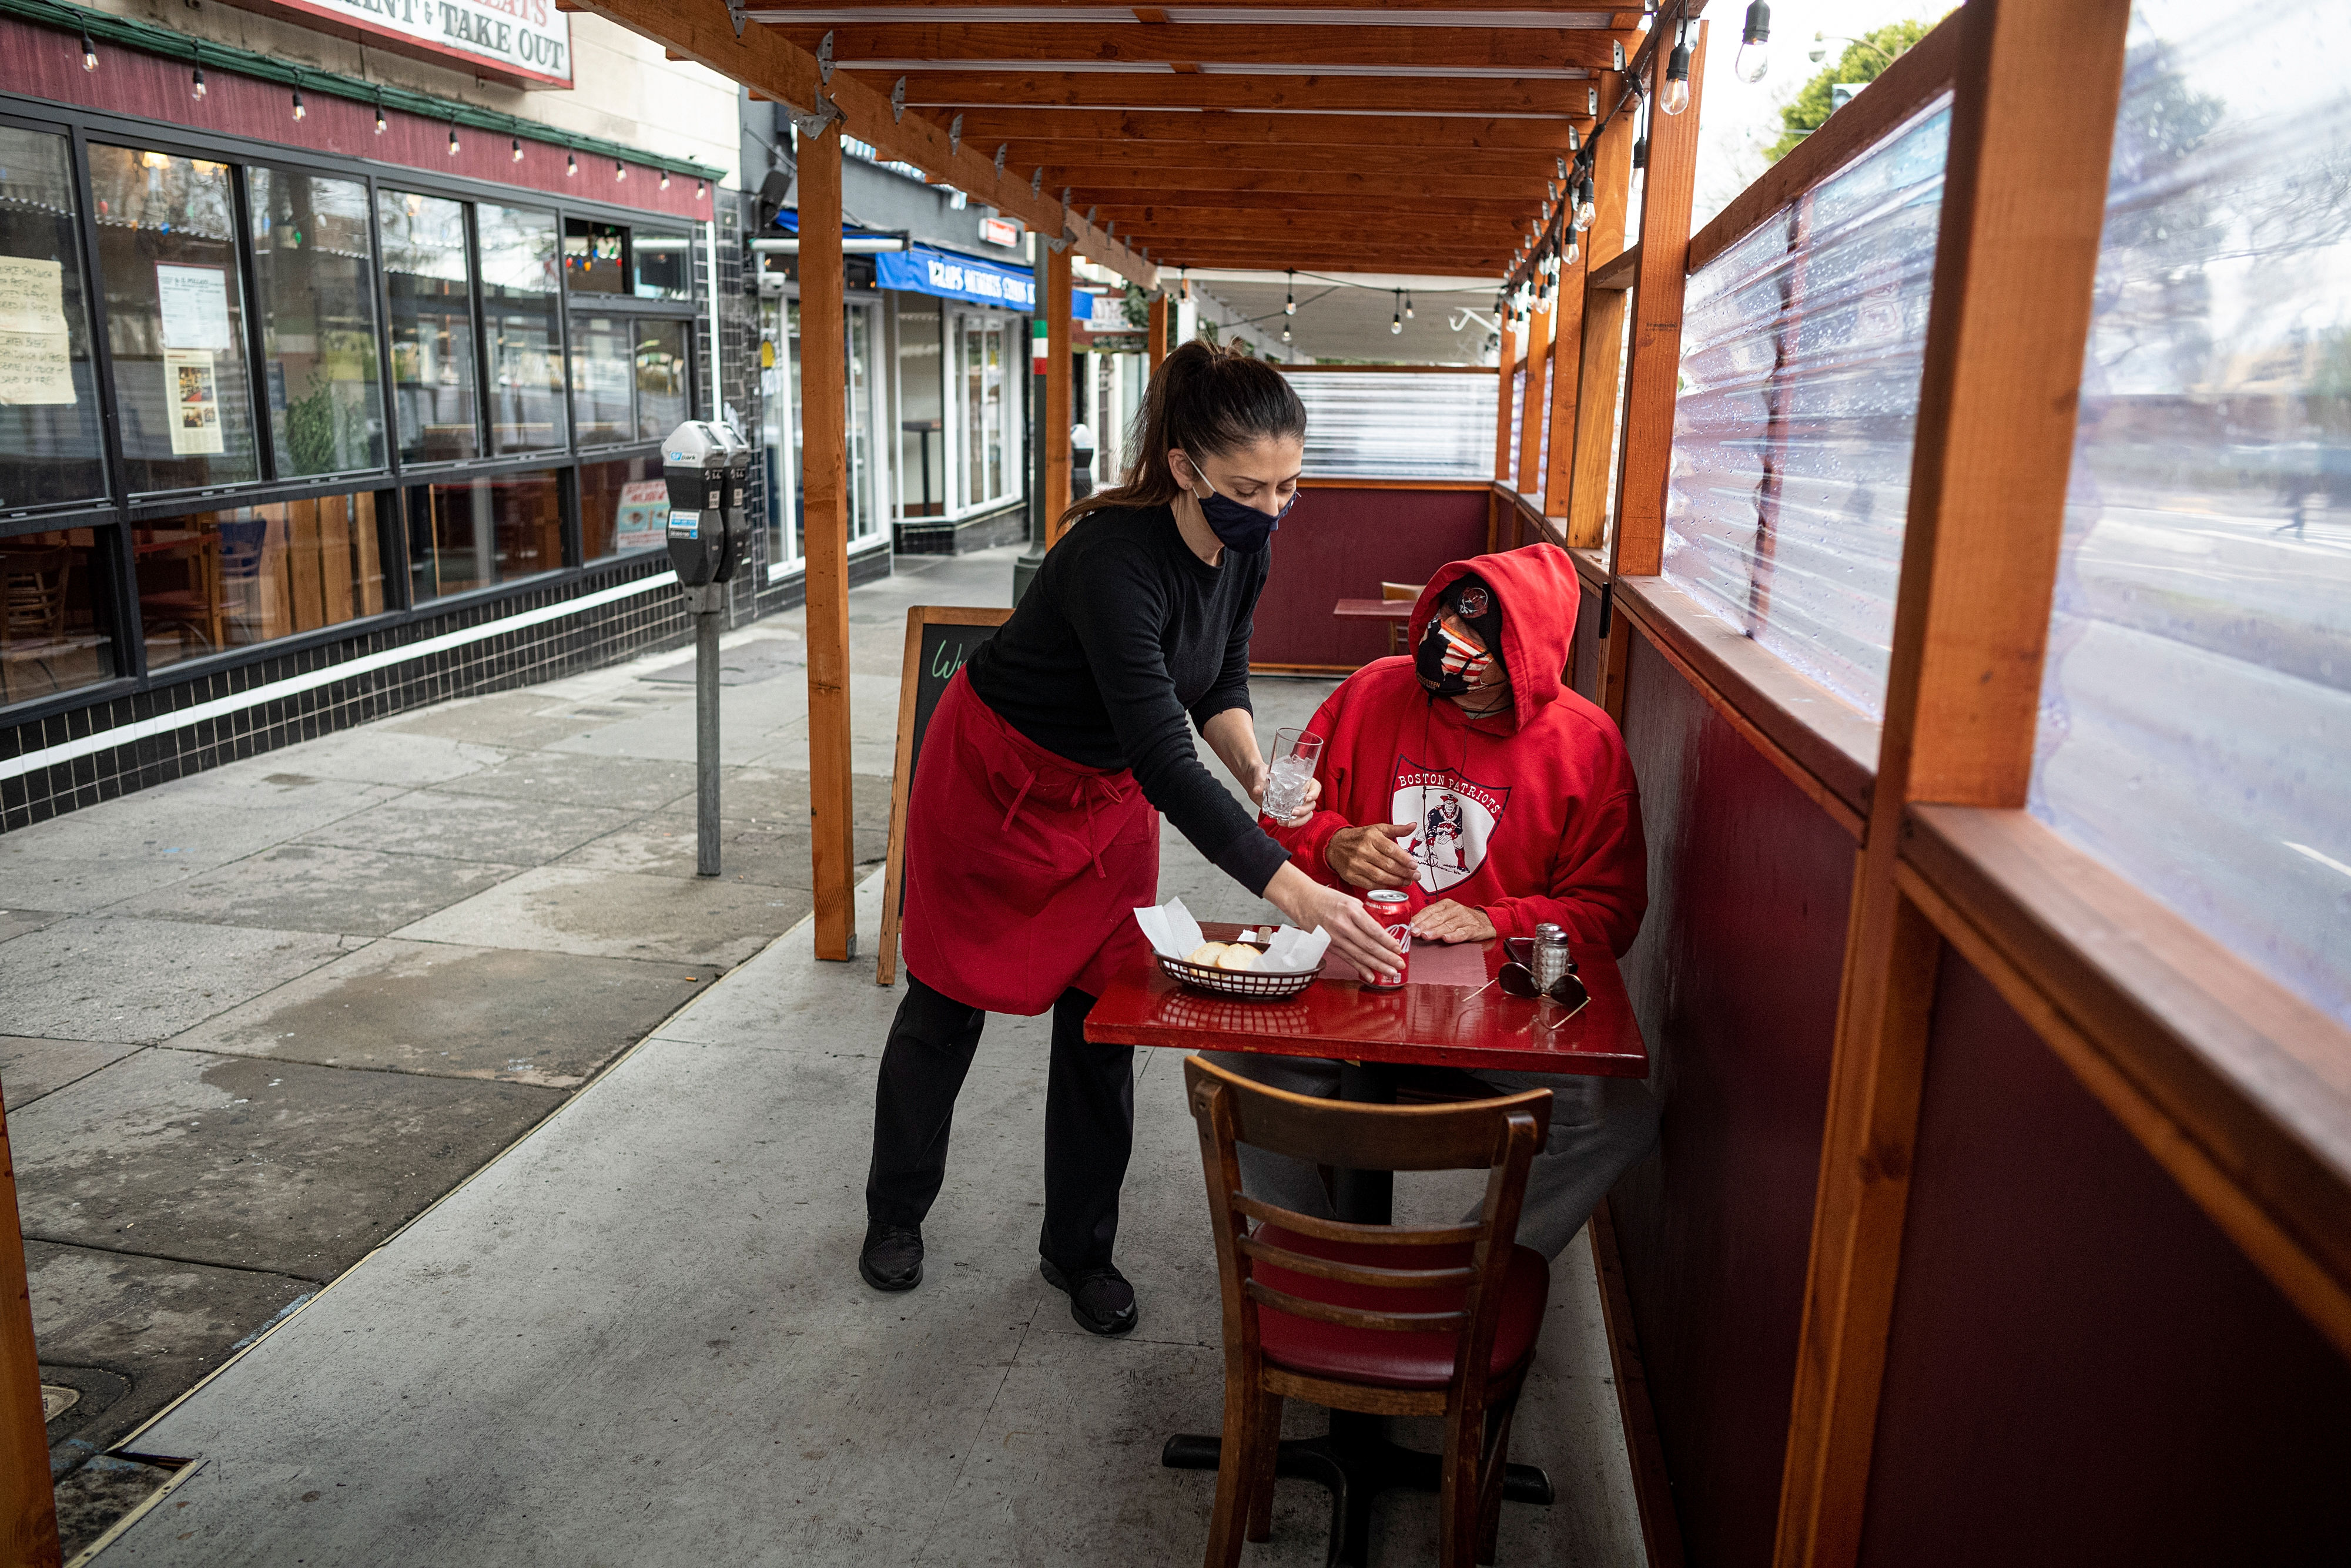 A server in a mask places food on a table in an outdoor setting